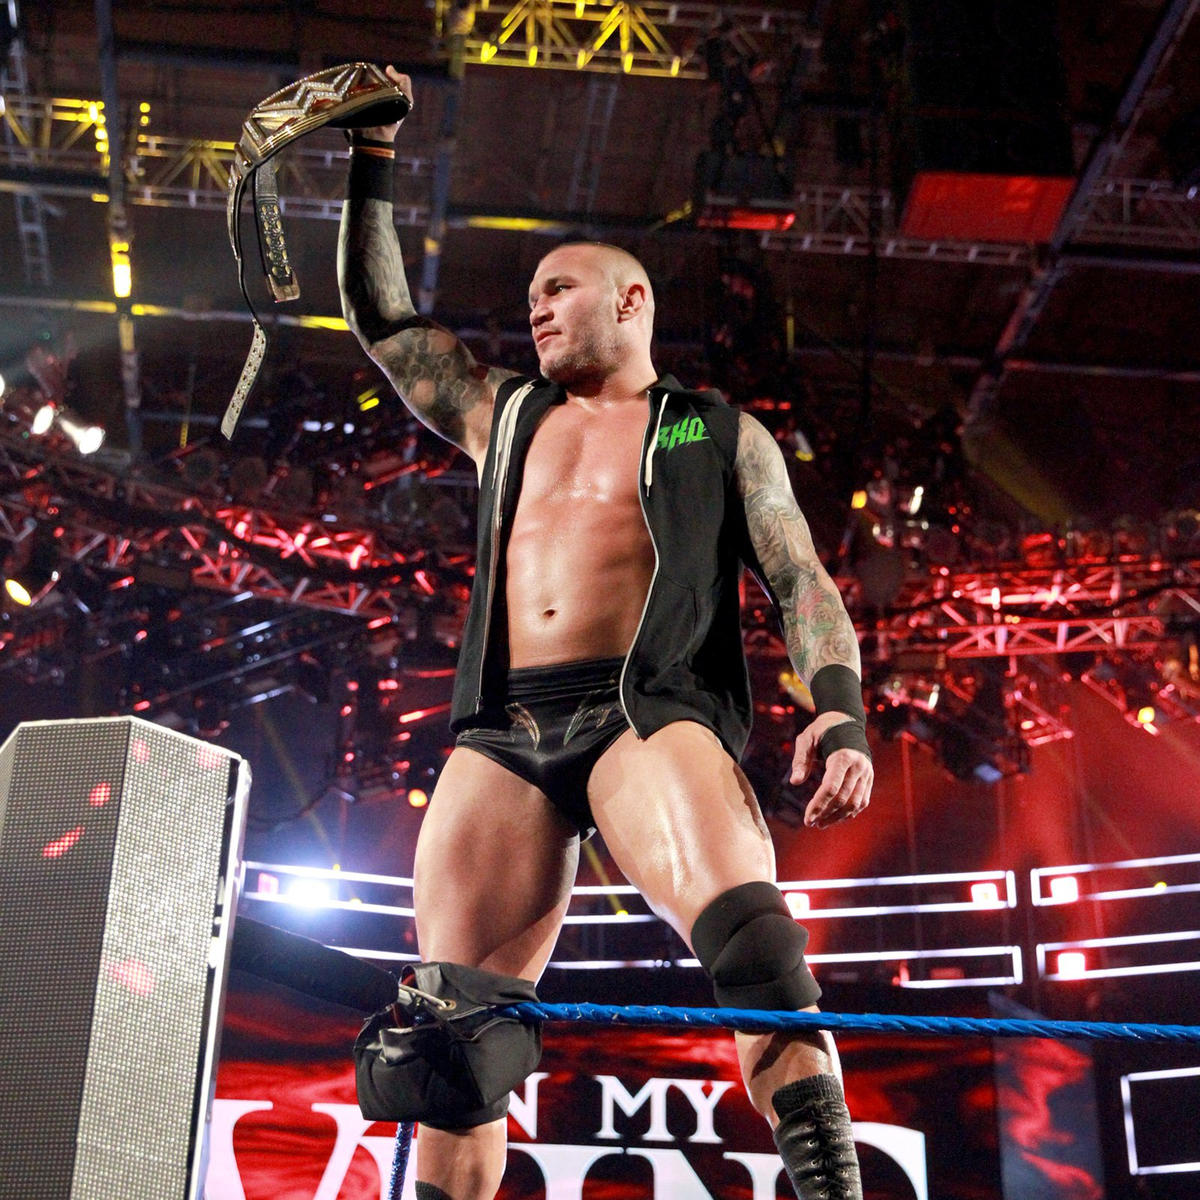 Image result for wwe.com randy orton""